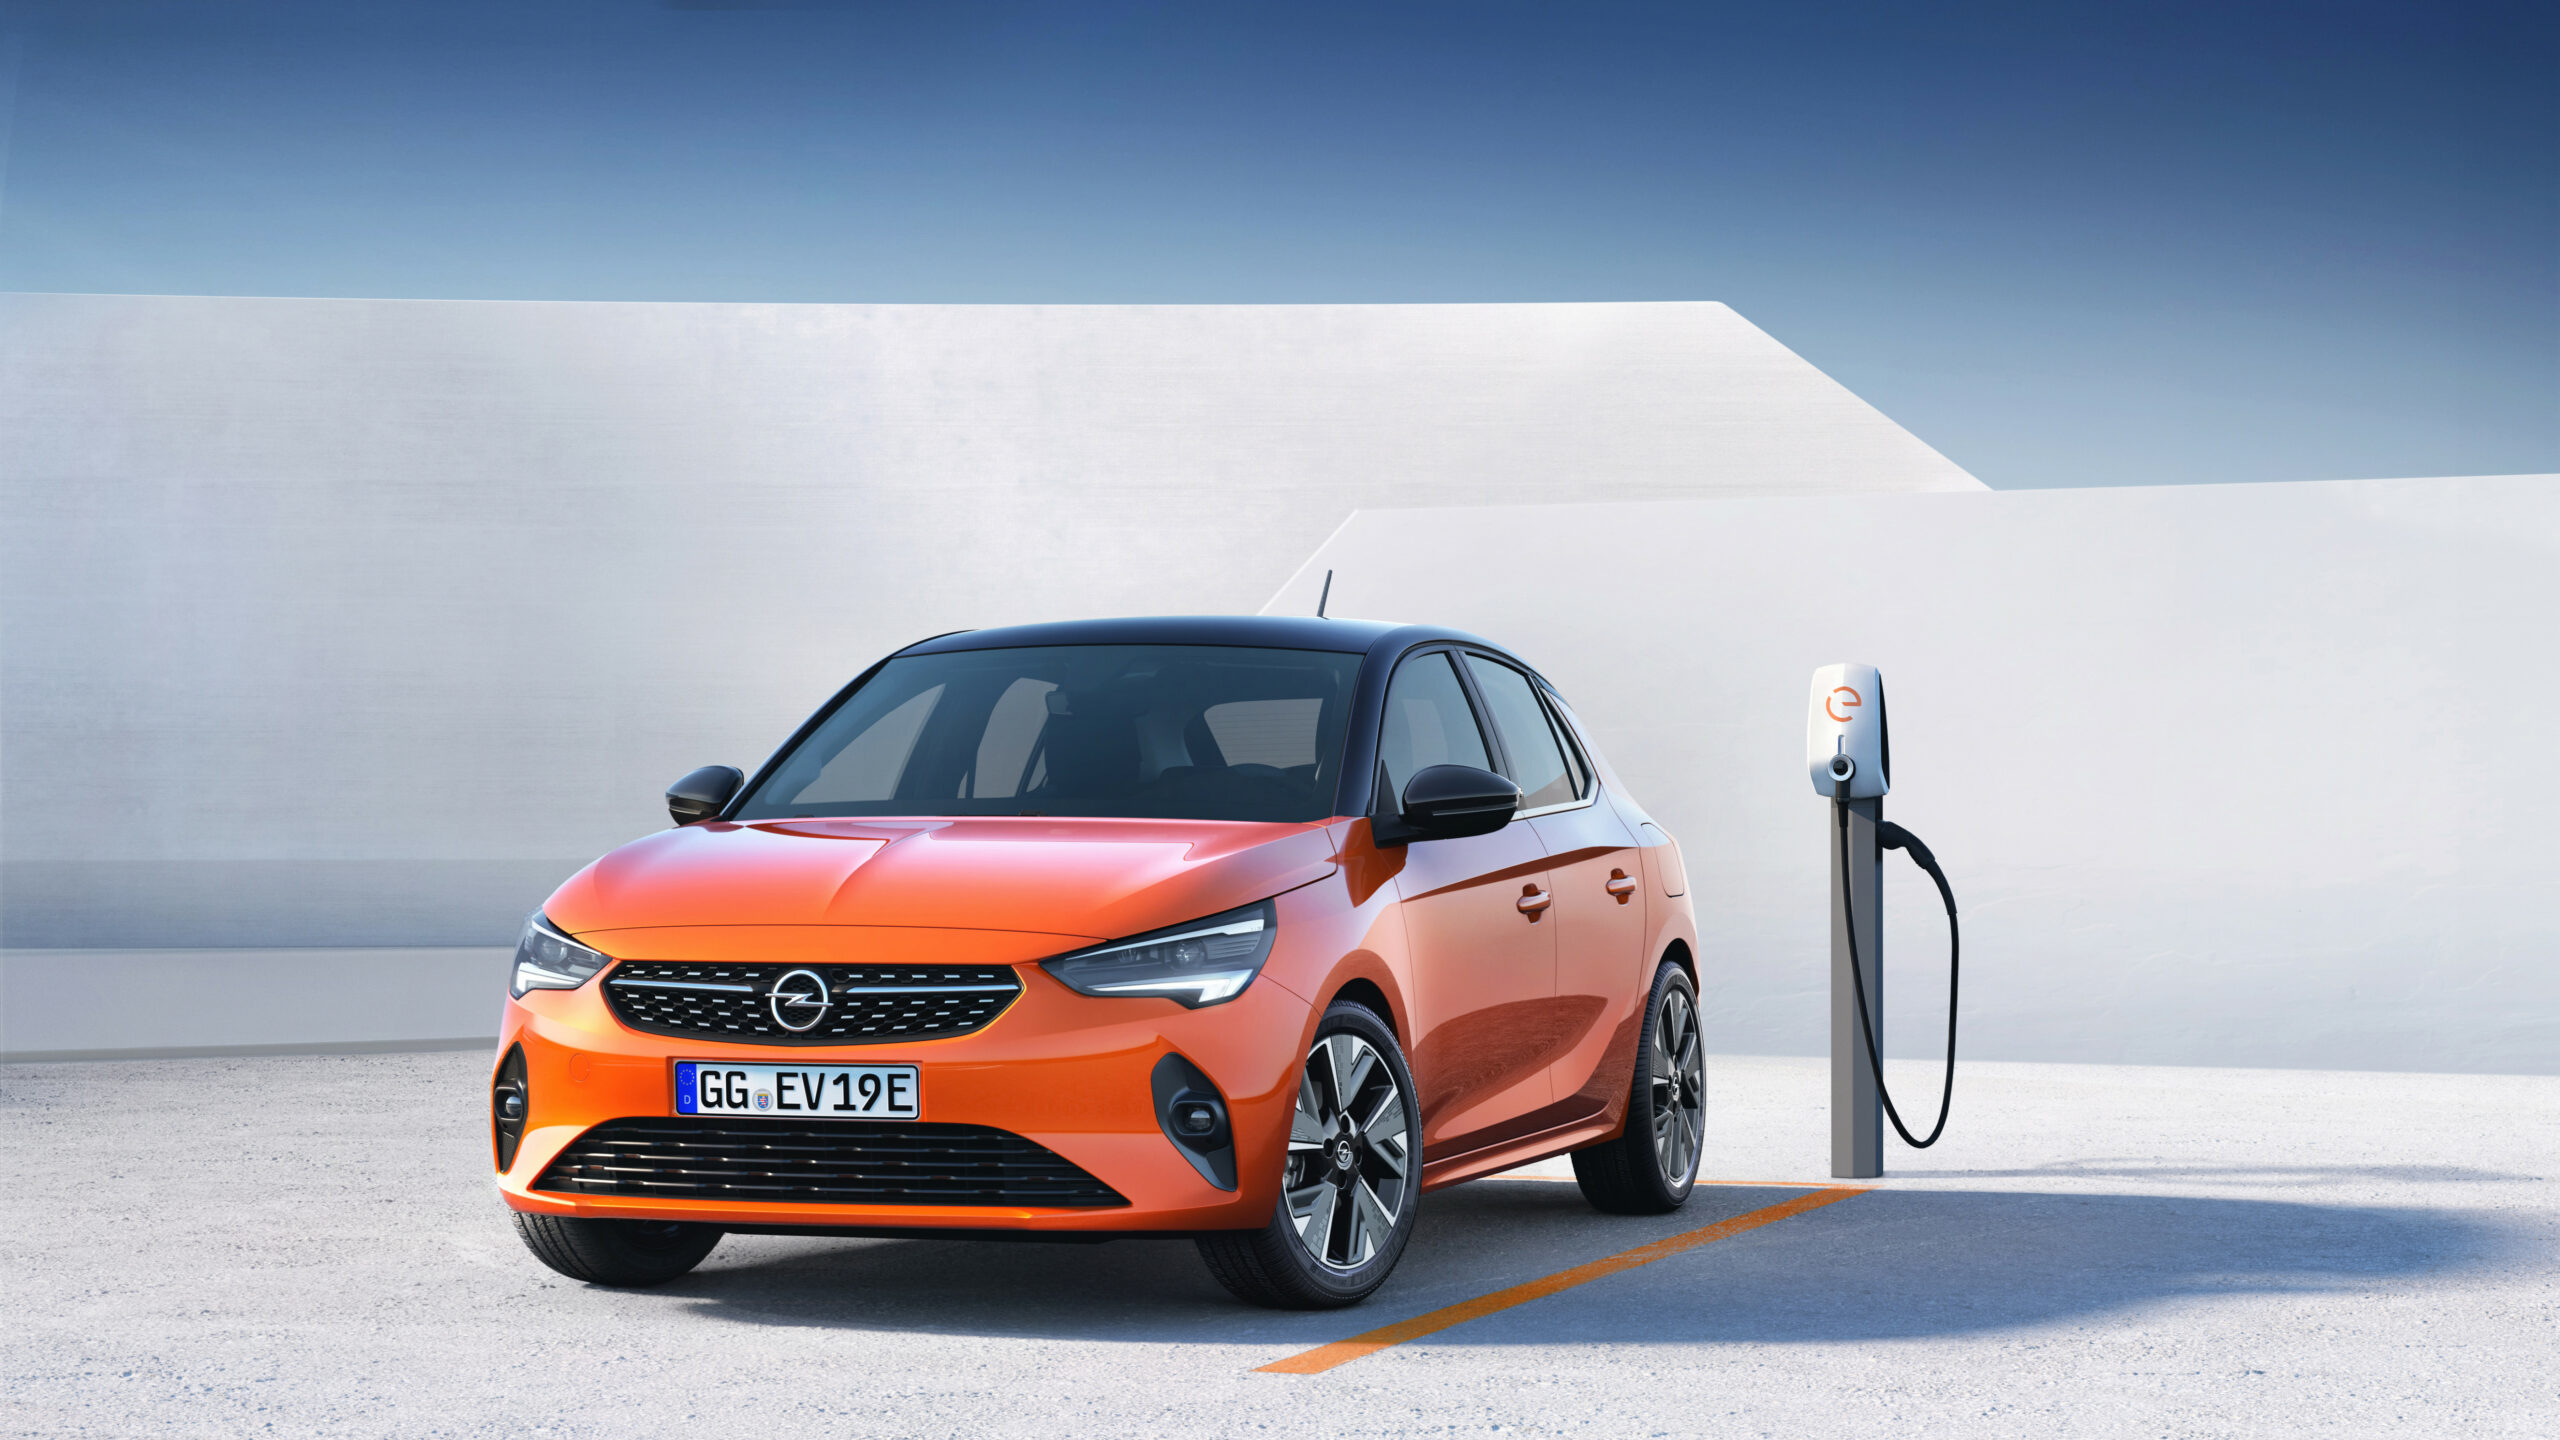 Opel Corsa: Latest News, Reviews, Specifications, Prices, Photos ..